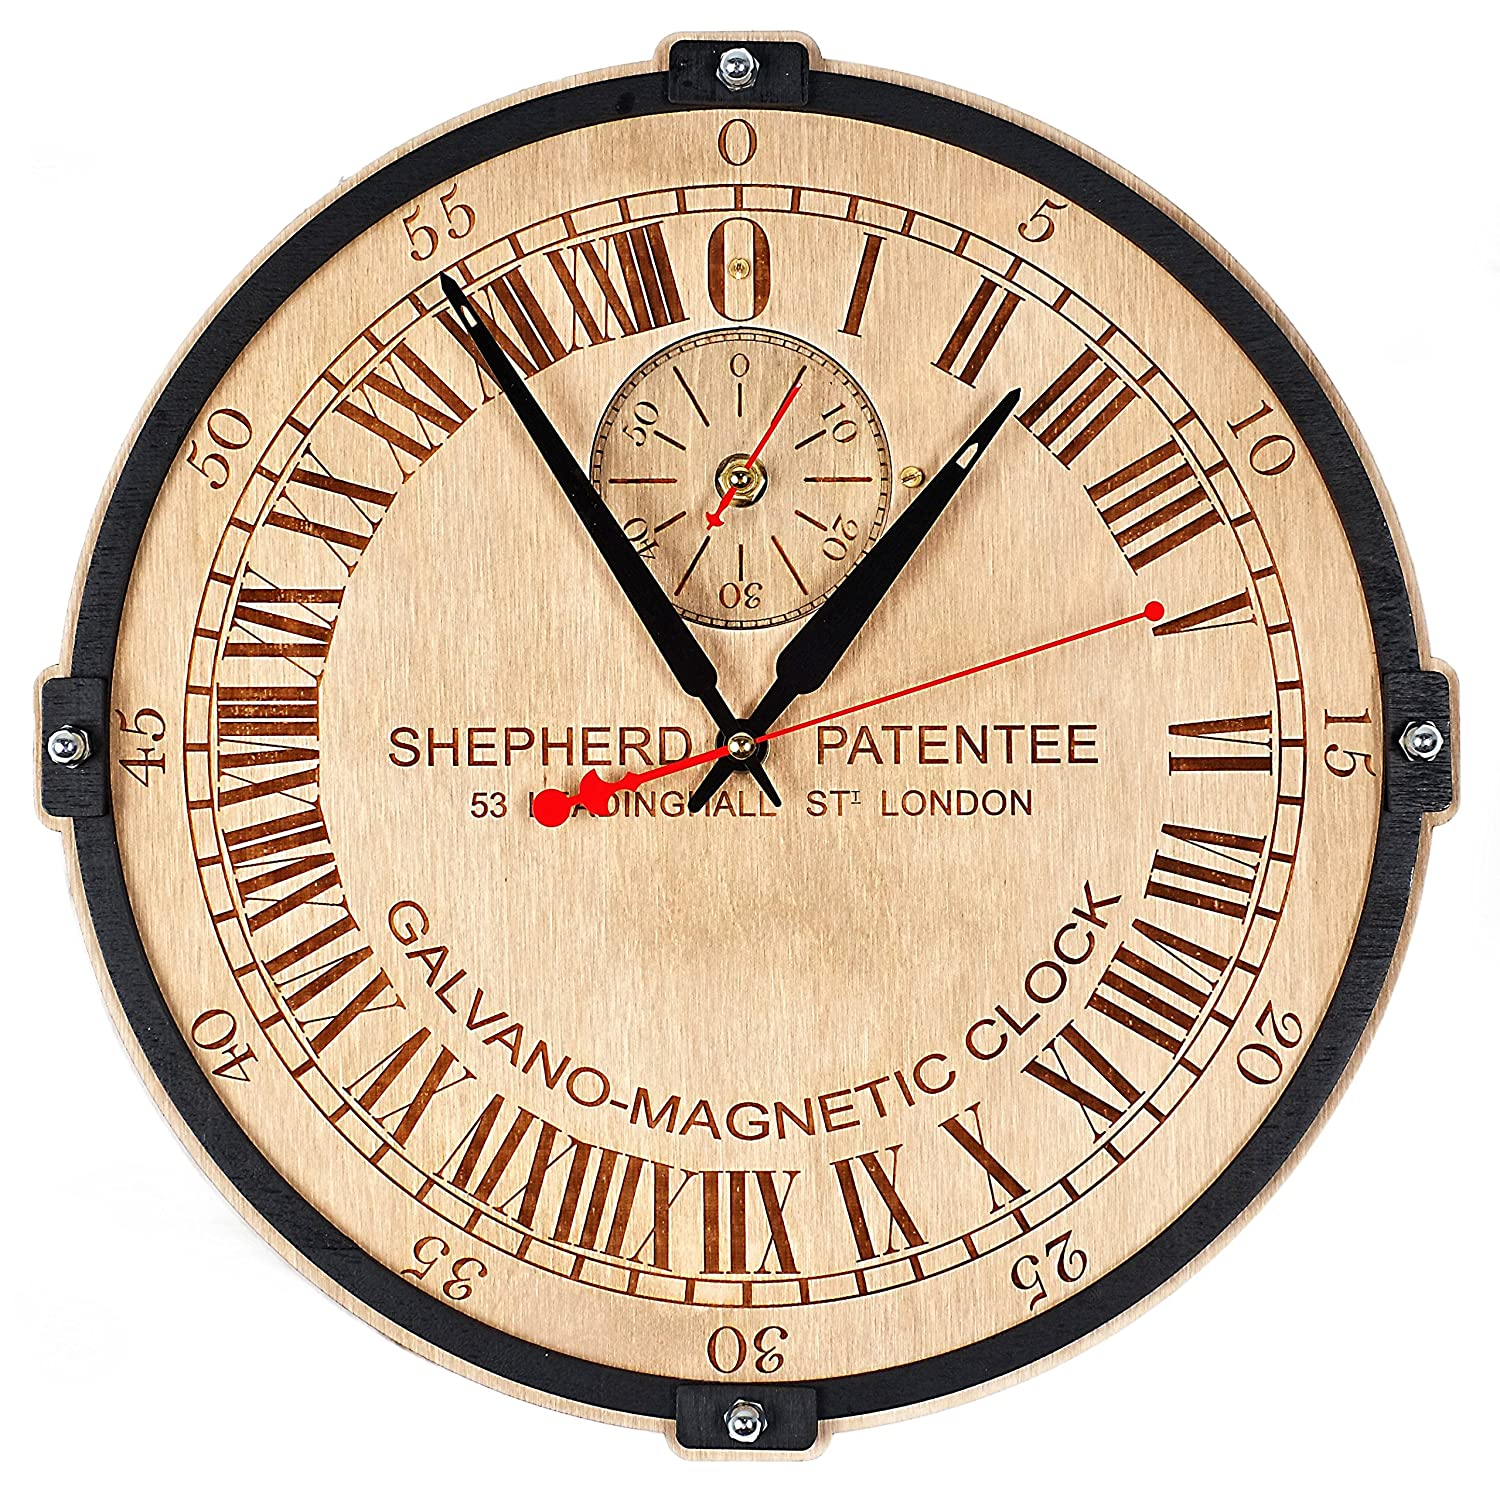 Greenwich Mean Time (GMT) Shepherd Gate unique large 24-hour analogue dial wooden wall clock (personalized gift)